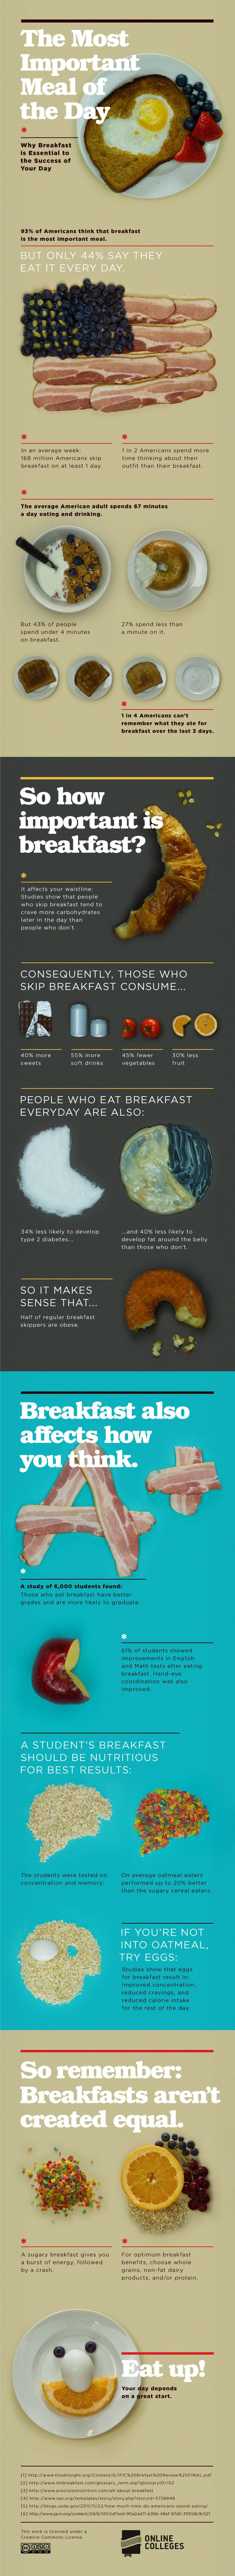 People Who Eat Breakfast Are Smarter And Skinnier by fastcoexist #Infographic #Breakfast